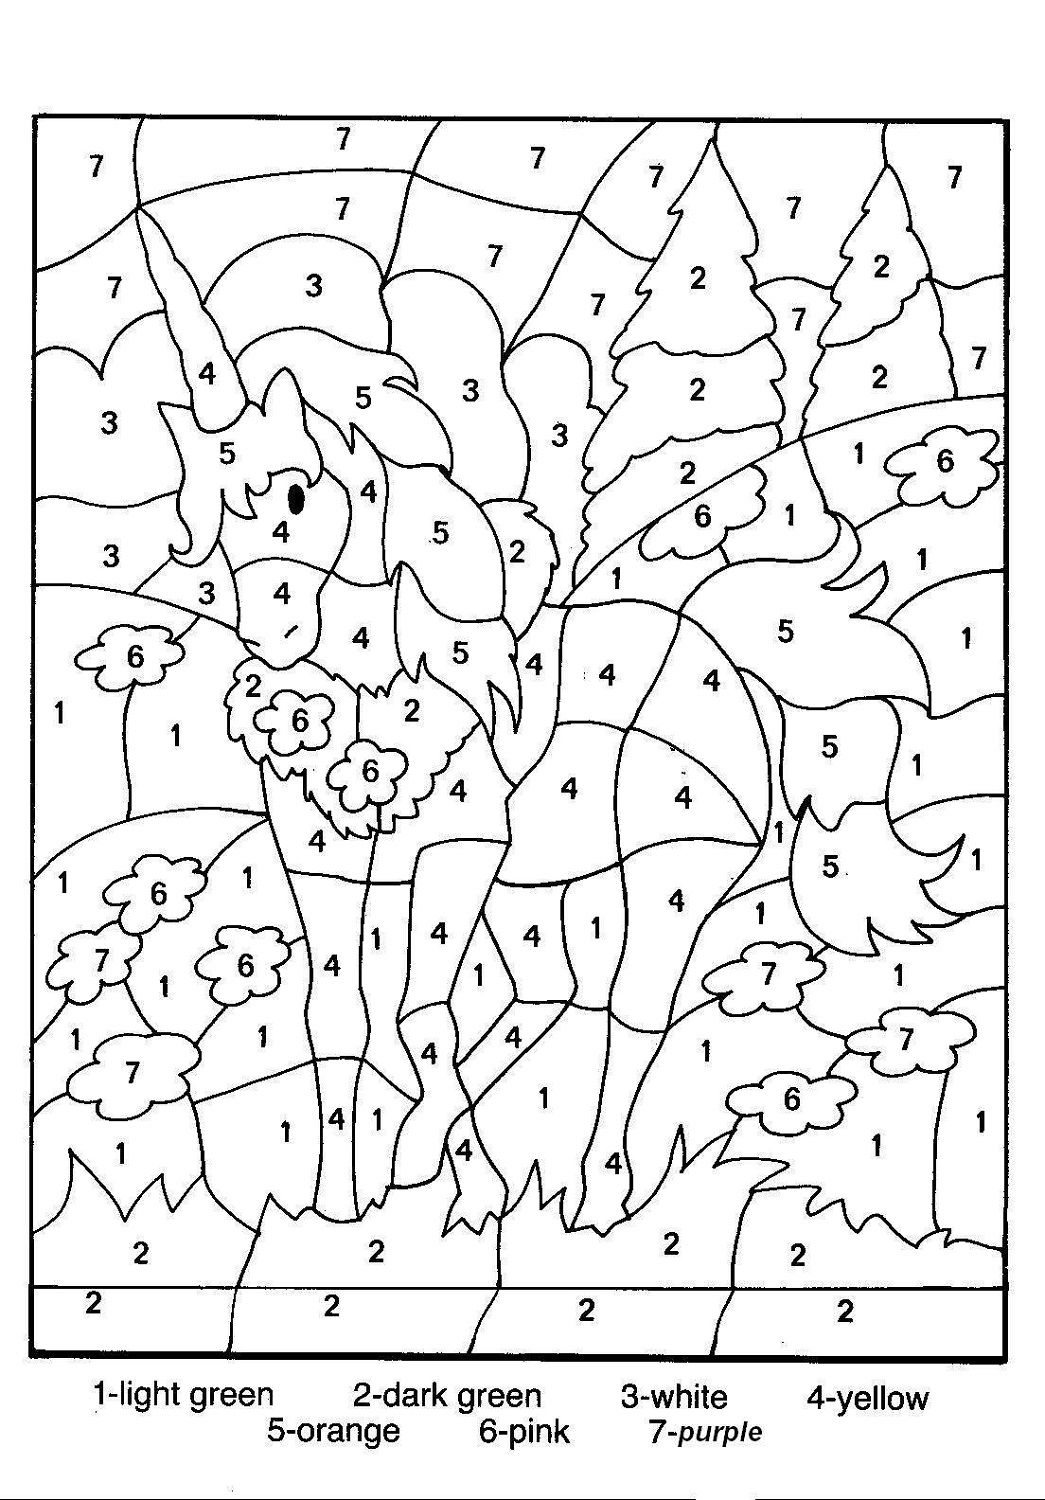 Color By Number For Older Kids In 2020 Unicorn Coloring Pages Horse Coloring Pages Free Printable Coloring Pages